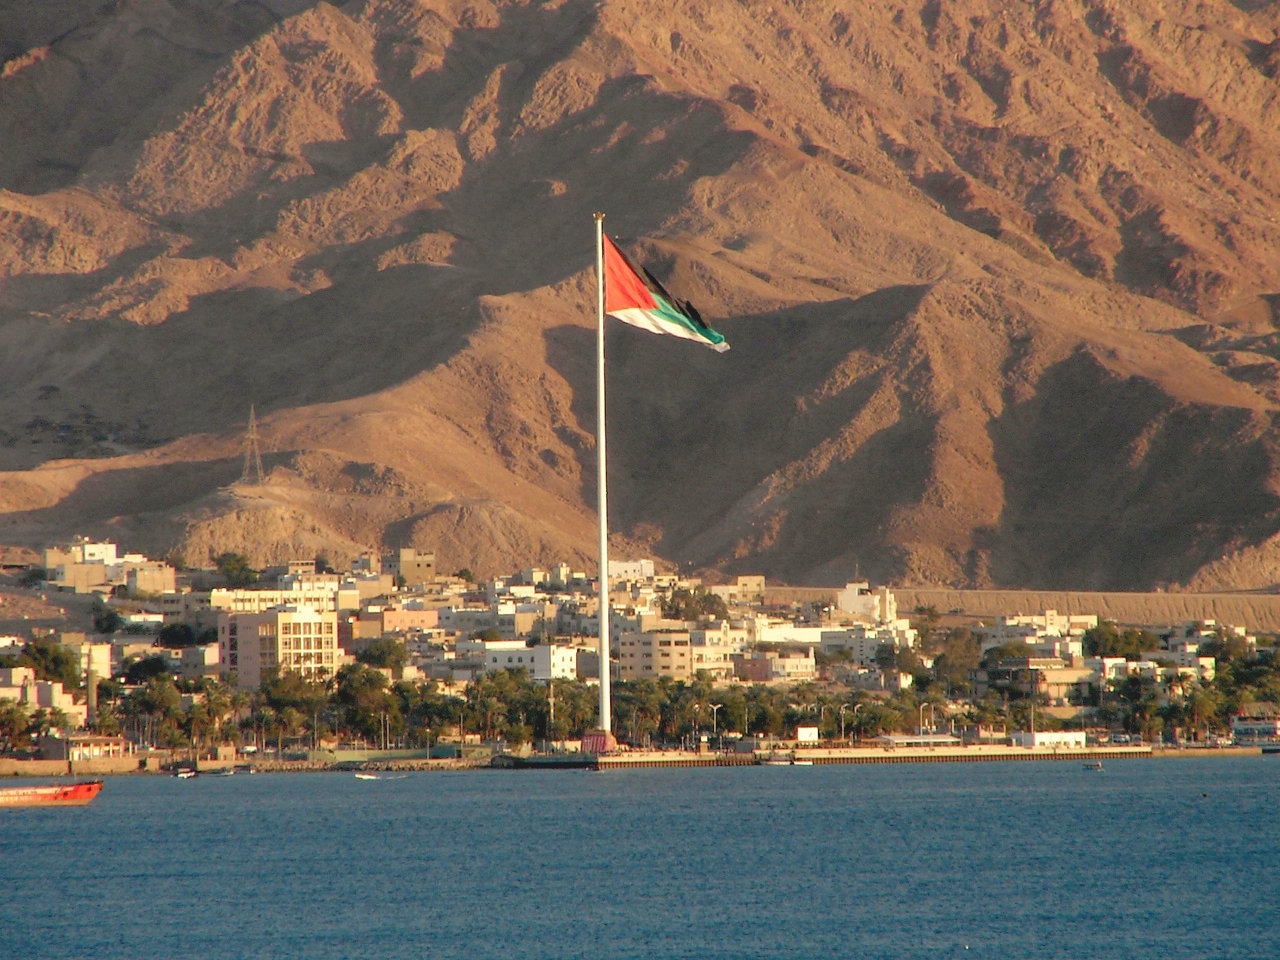 Jordan's Ministry of Energy and Mineral Resources has chosen TSK and Enviromena to build a 120MWp PV system. Image: Aviad2001, Wikimedia Commons.